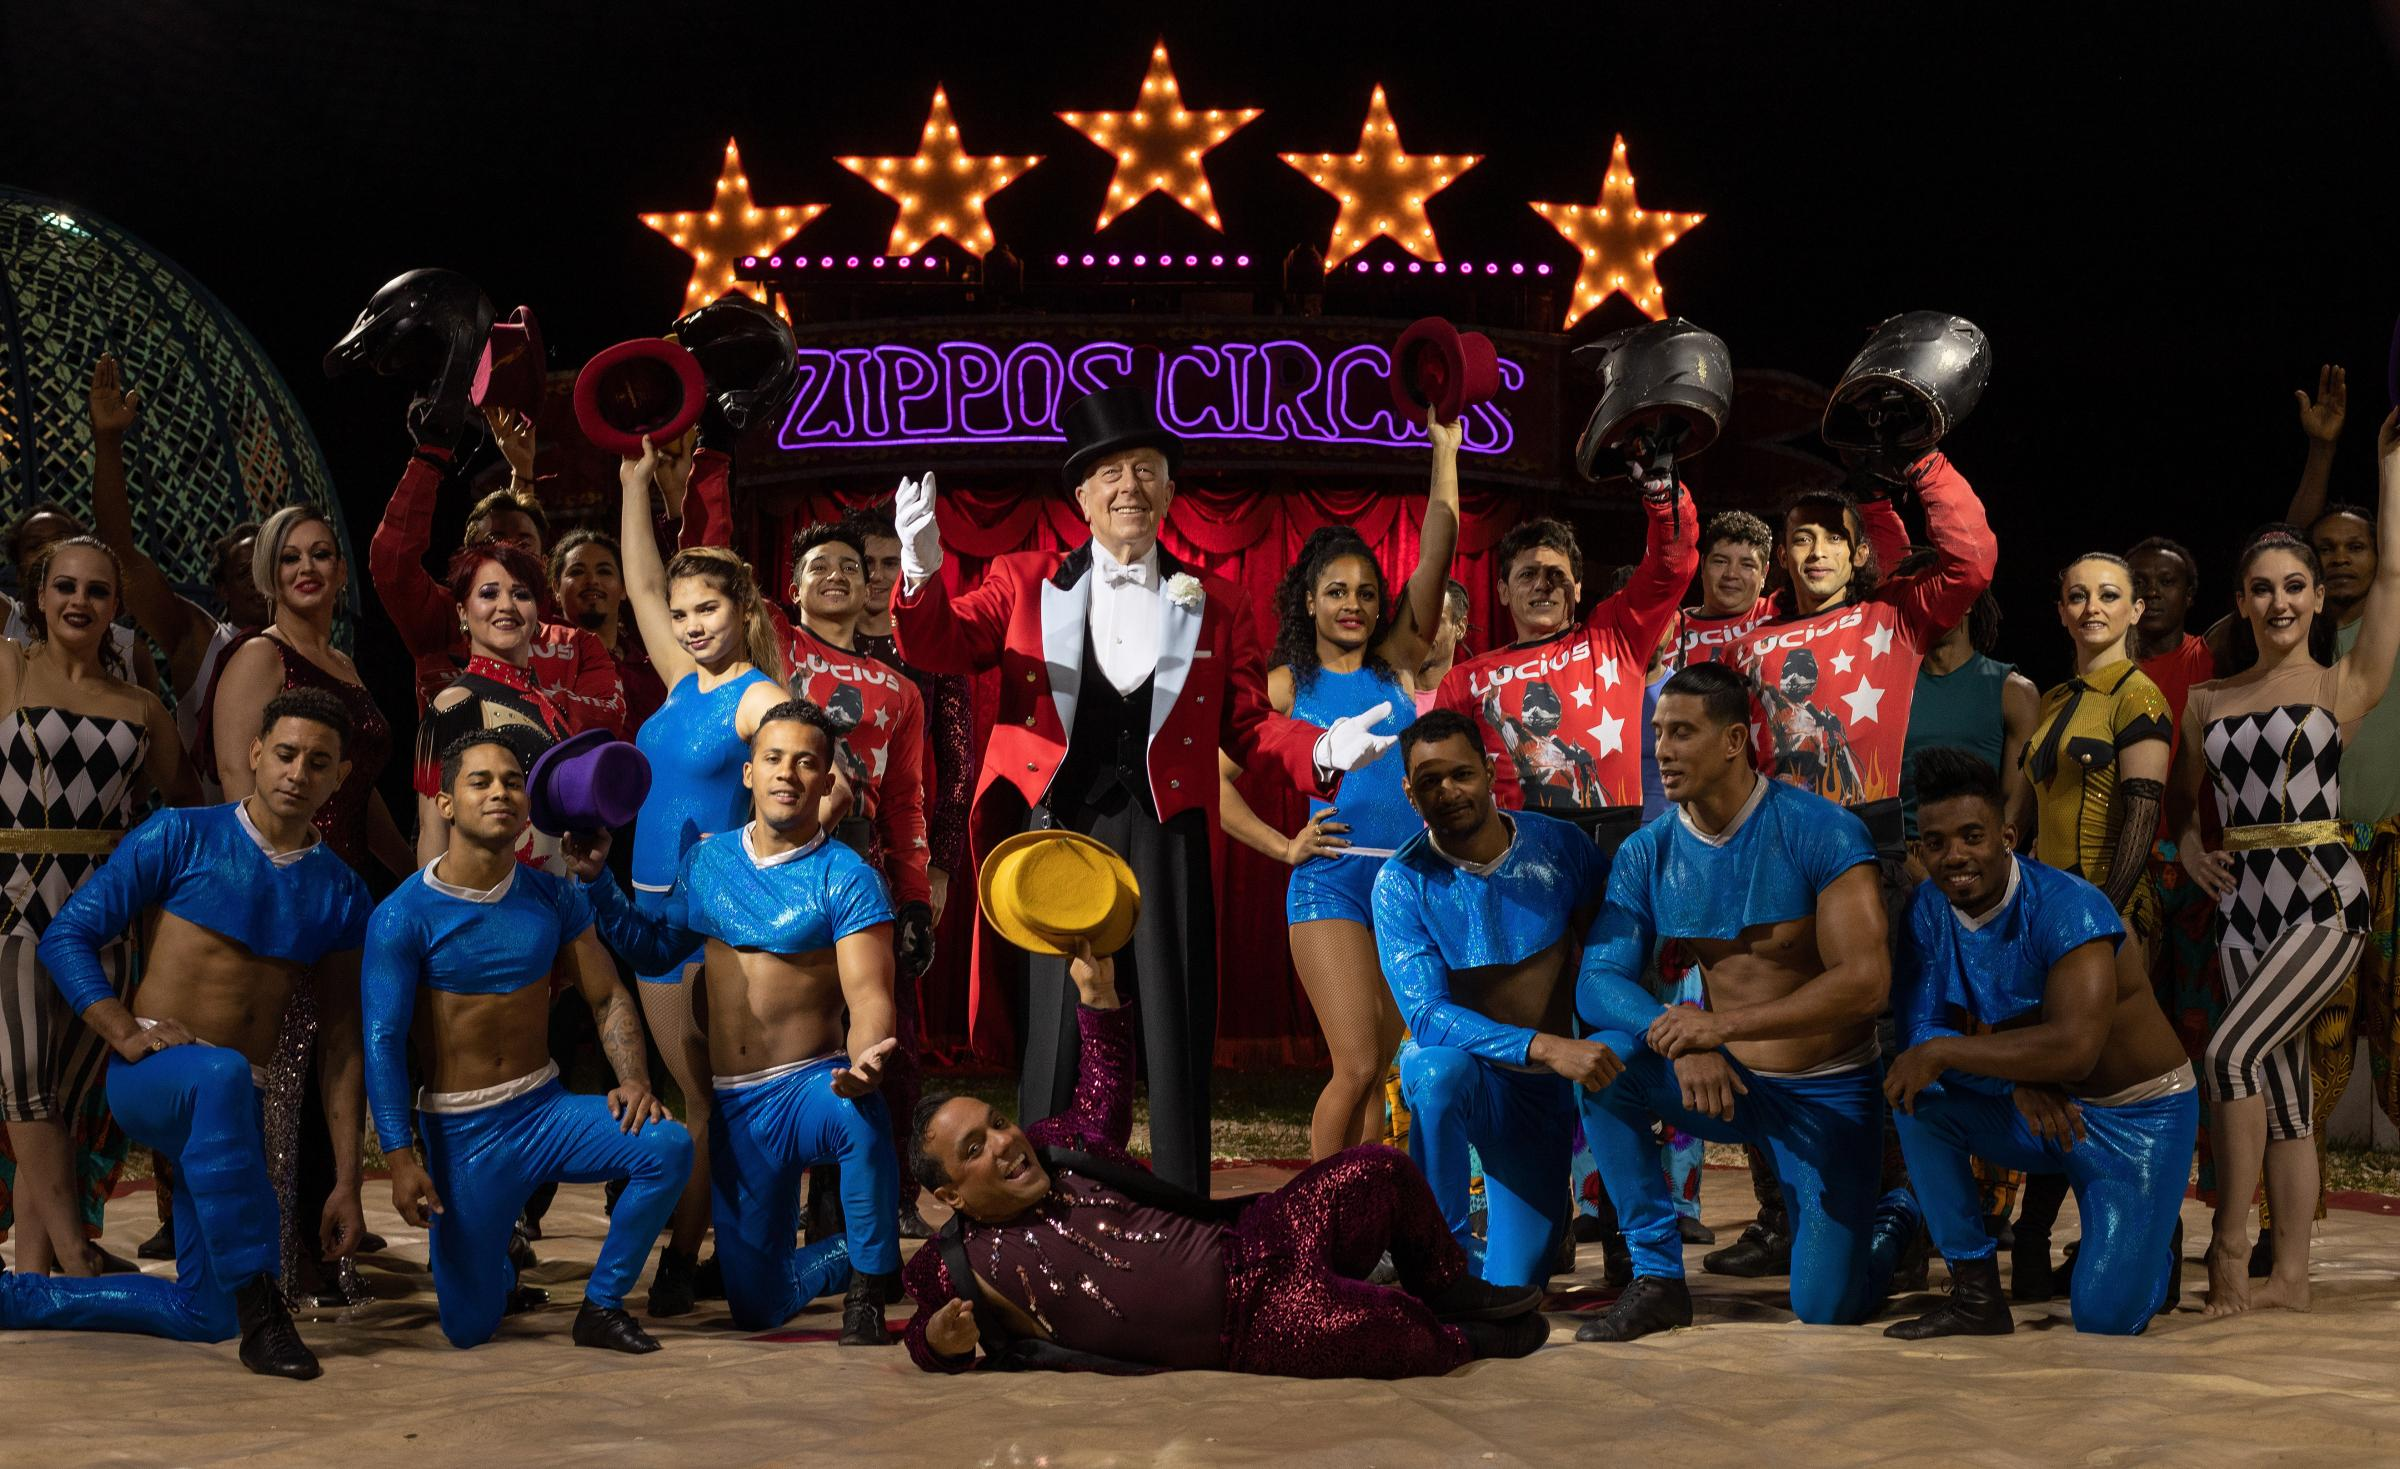 Movie fans invited to circus fun